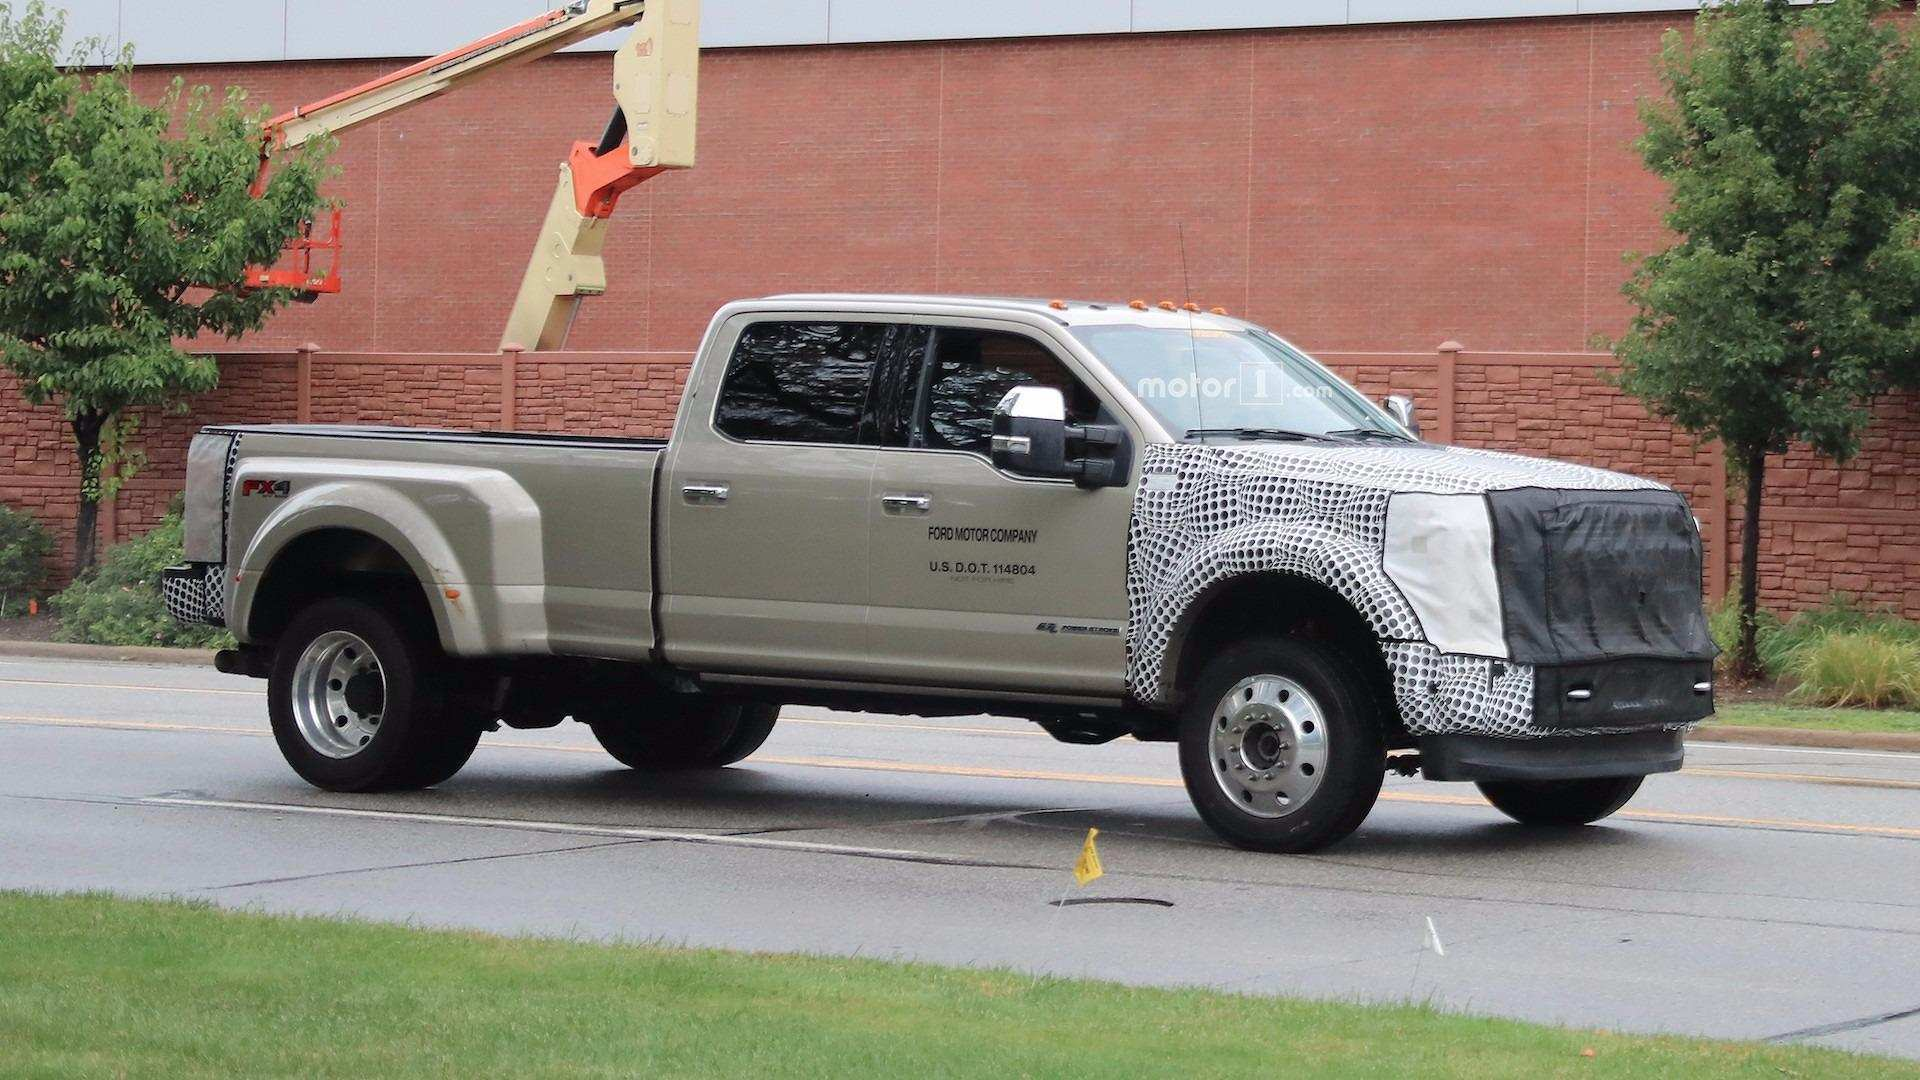 96 The 2019 Spy Shots Ford F350 Diesel Configurations